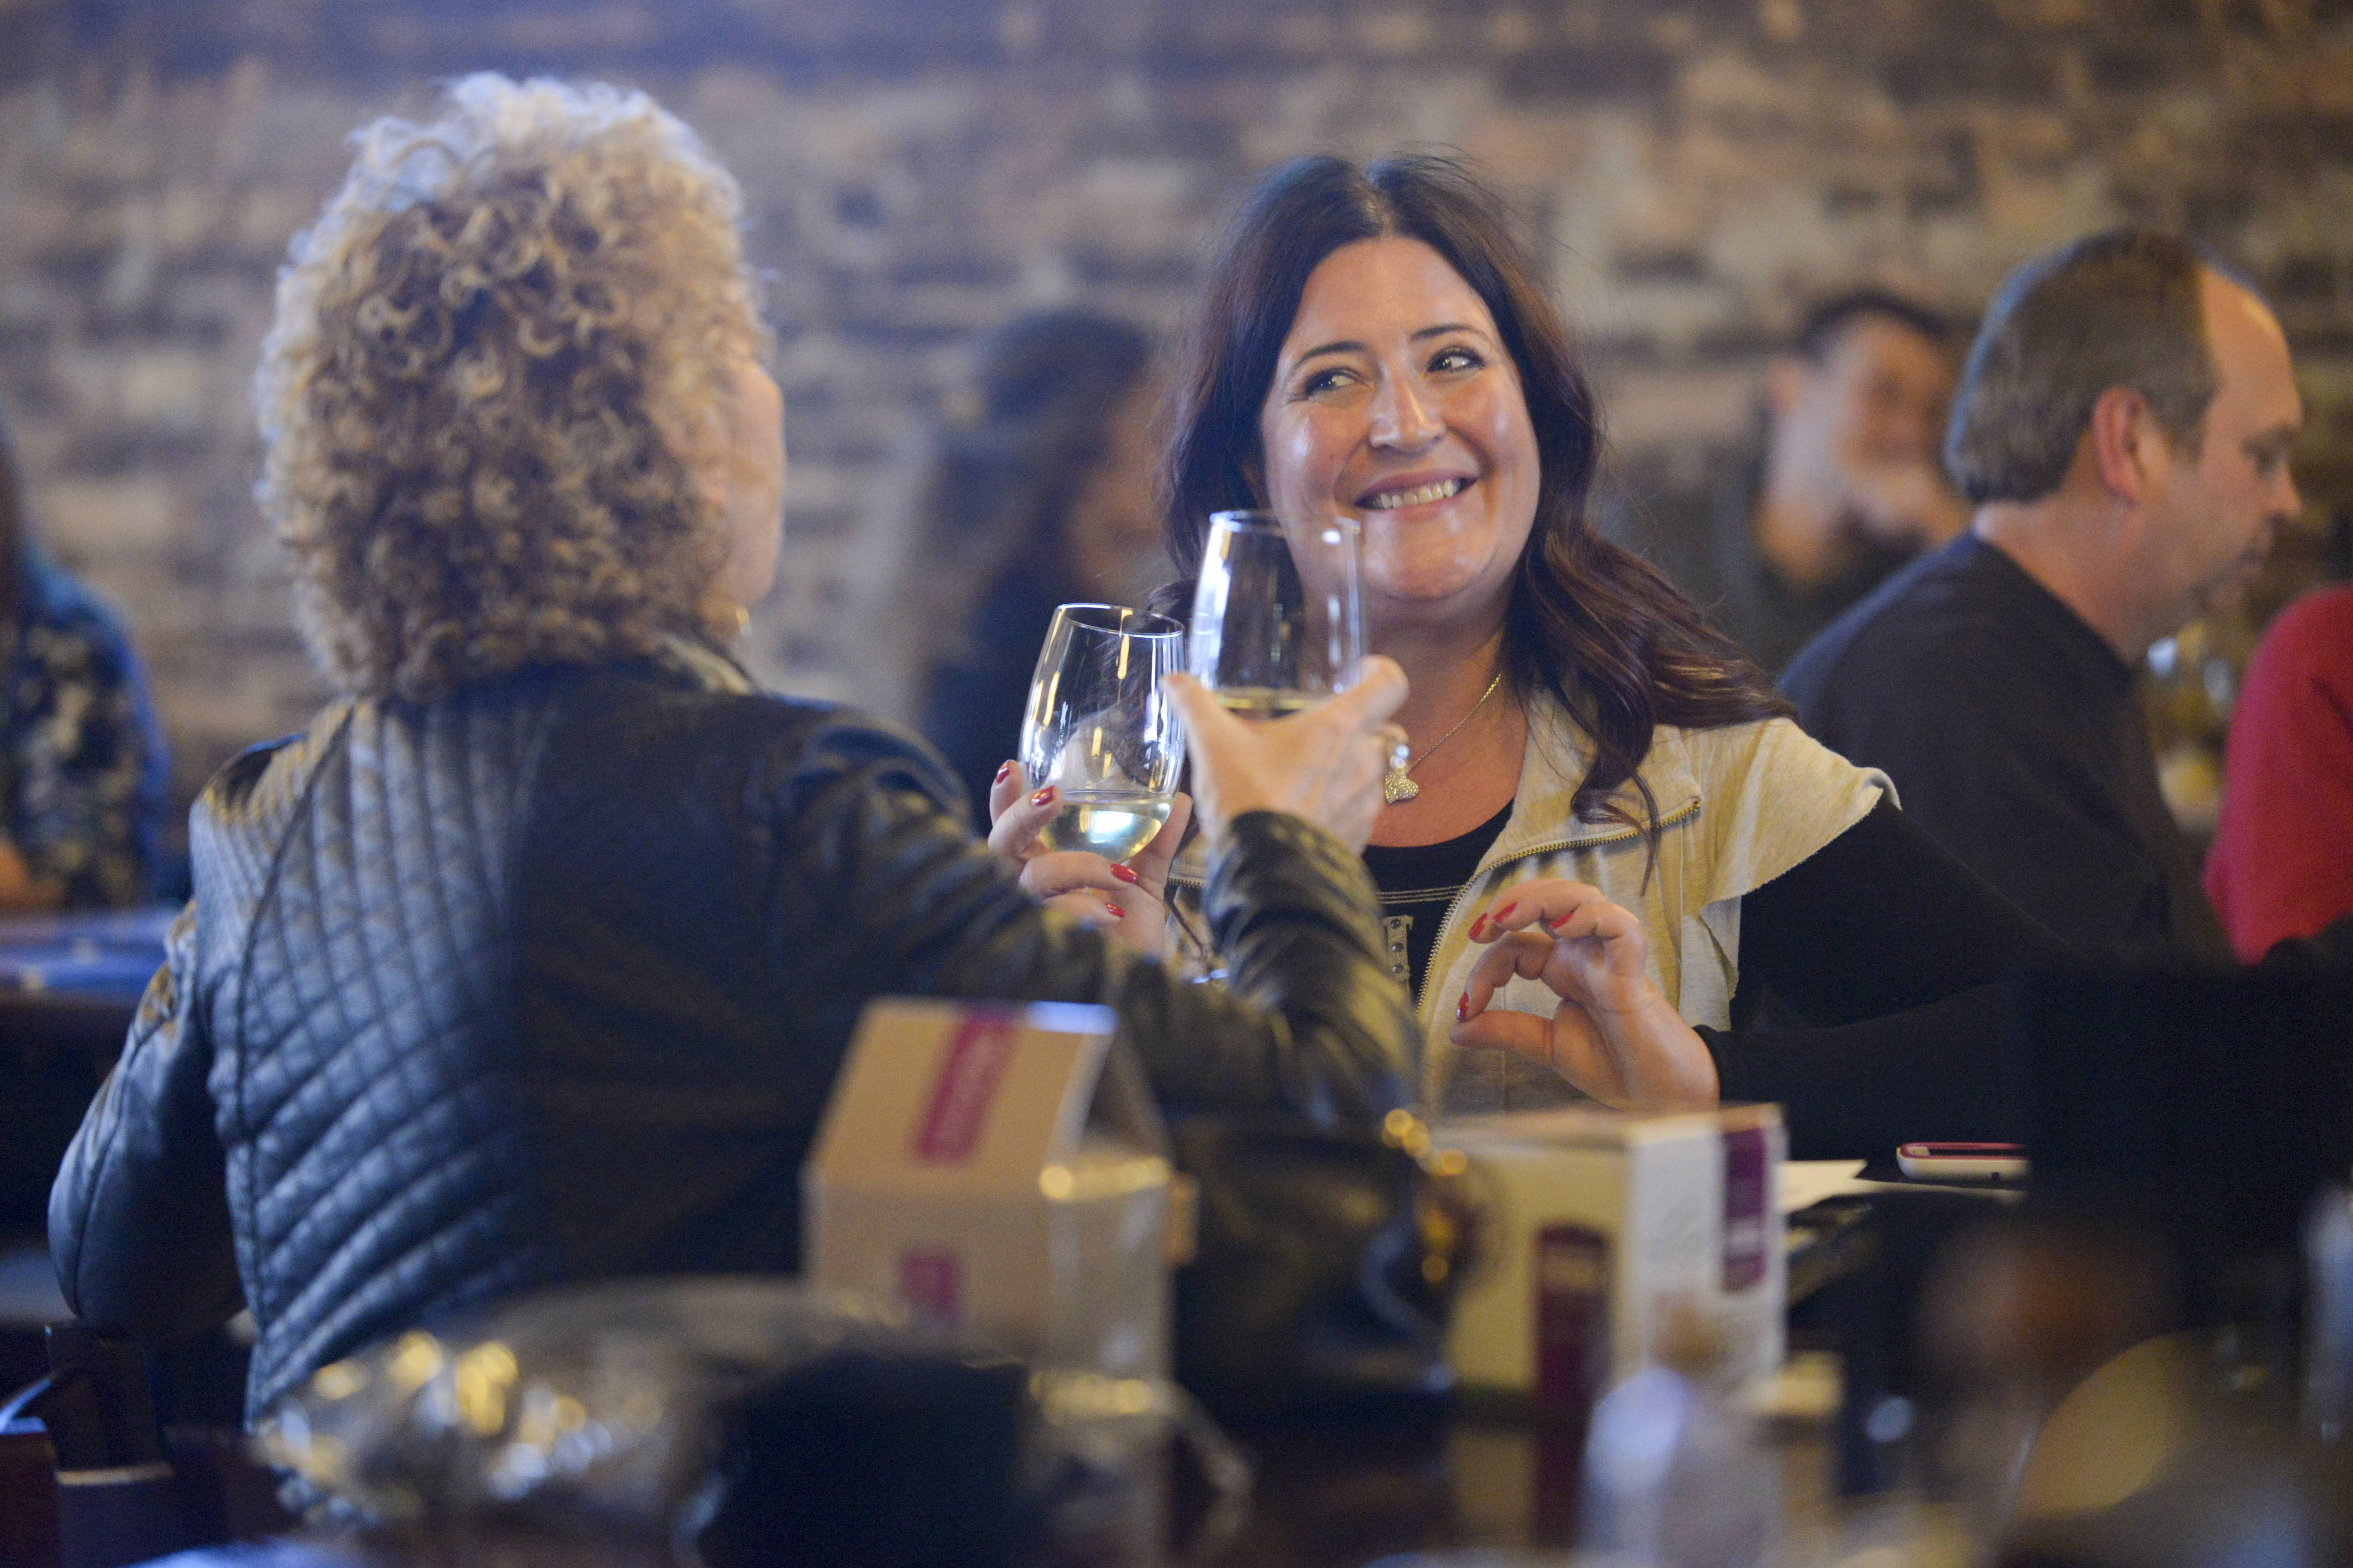 Kathy Labbe, left, of Elgin and Toni Ballentine of Roselle enjoy glasses of wine at the 1913 Restaurant and Wine Bar in Roselle.